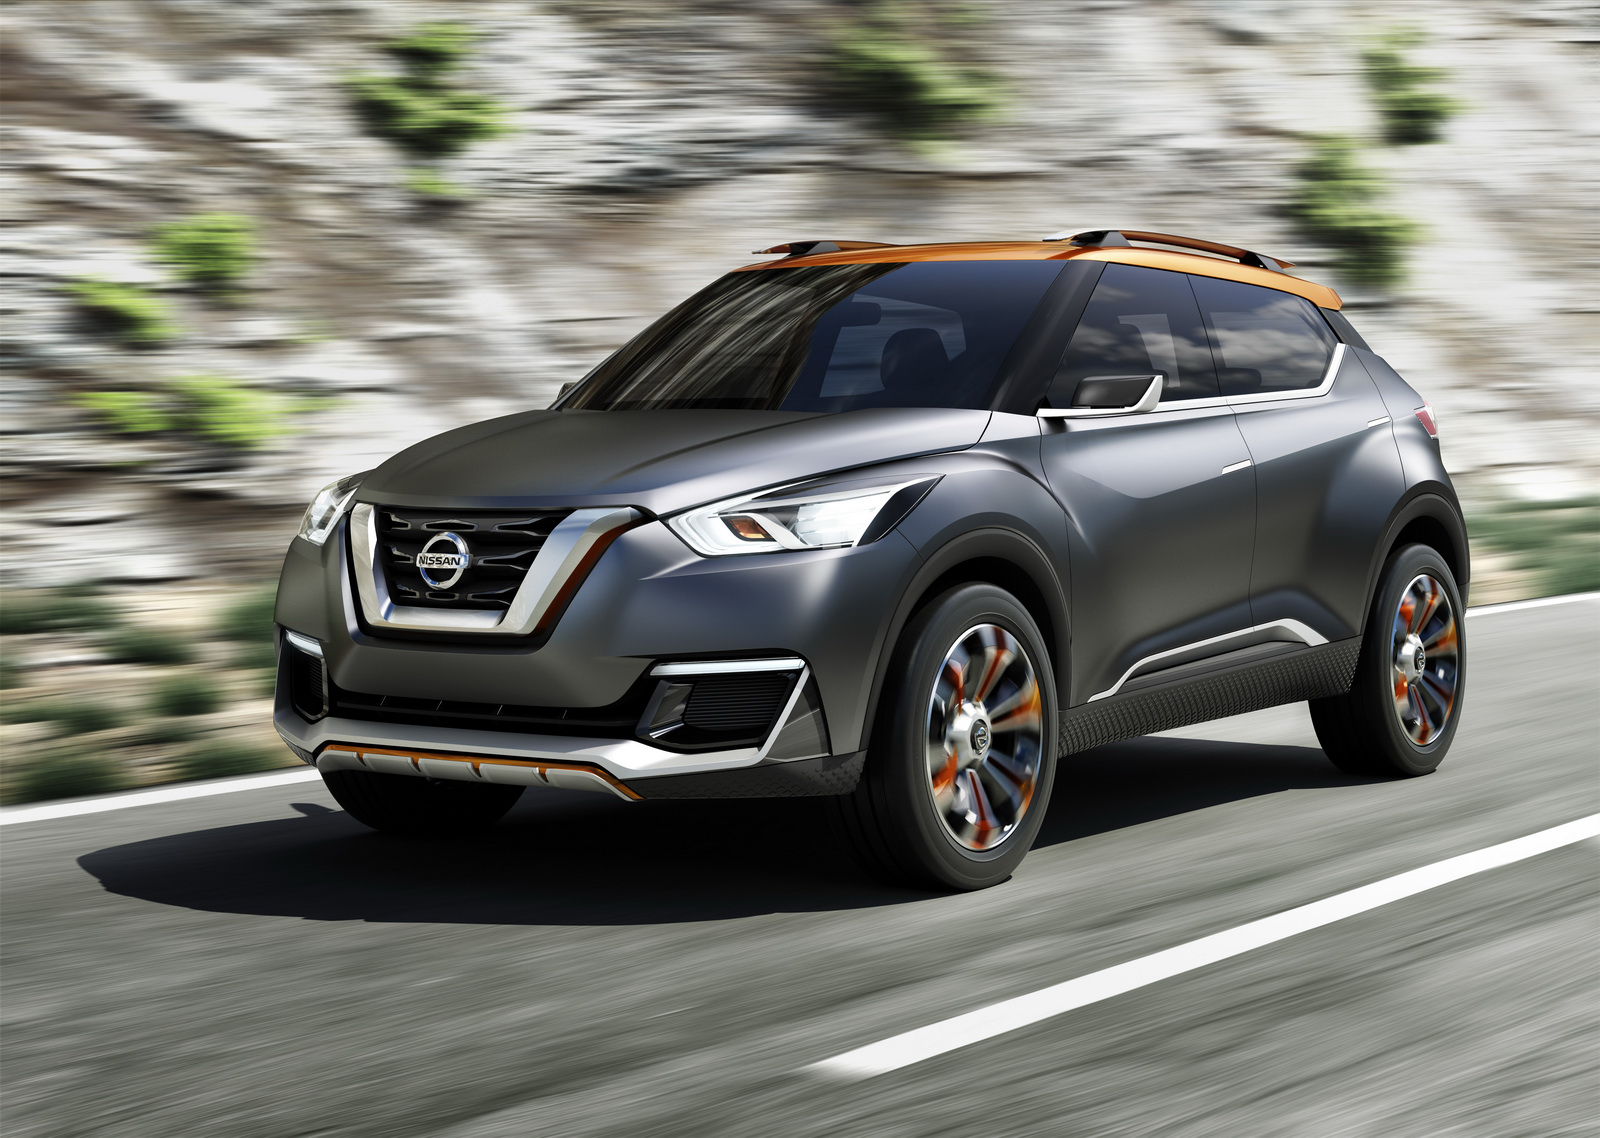 Nissan Kicks SUV to Debut in 2016 as the Official Car of the Olympics in Rio de Janeiro ...